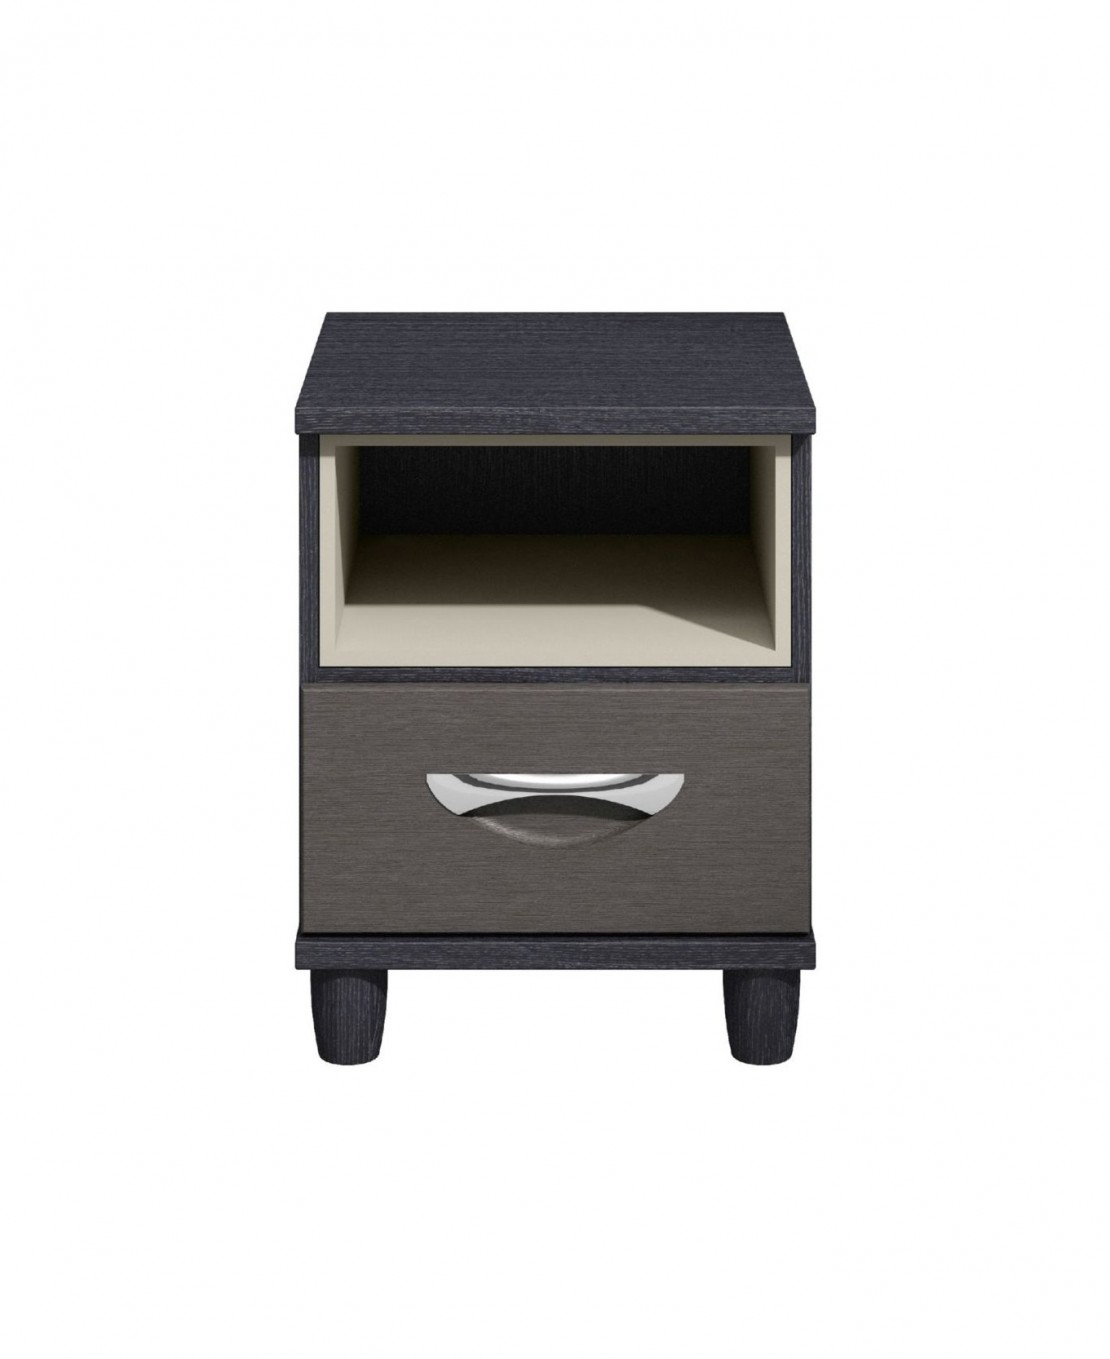 /_images/product-photos/kt-furniture-moda-graphite-1-drawer-pod-chest-a.jpg